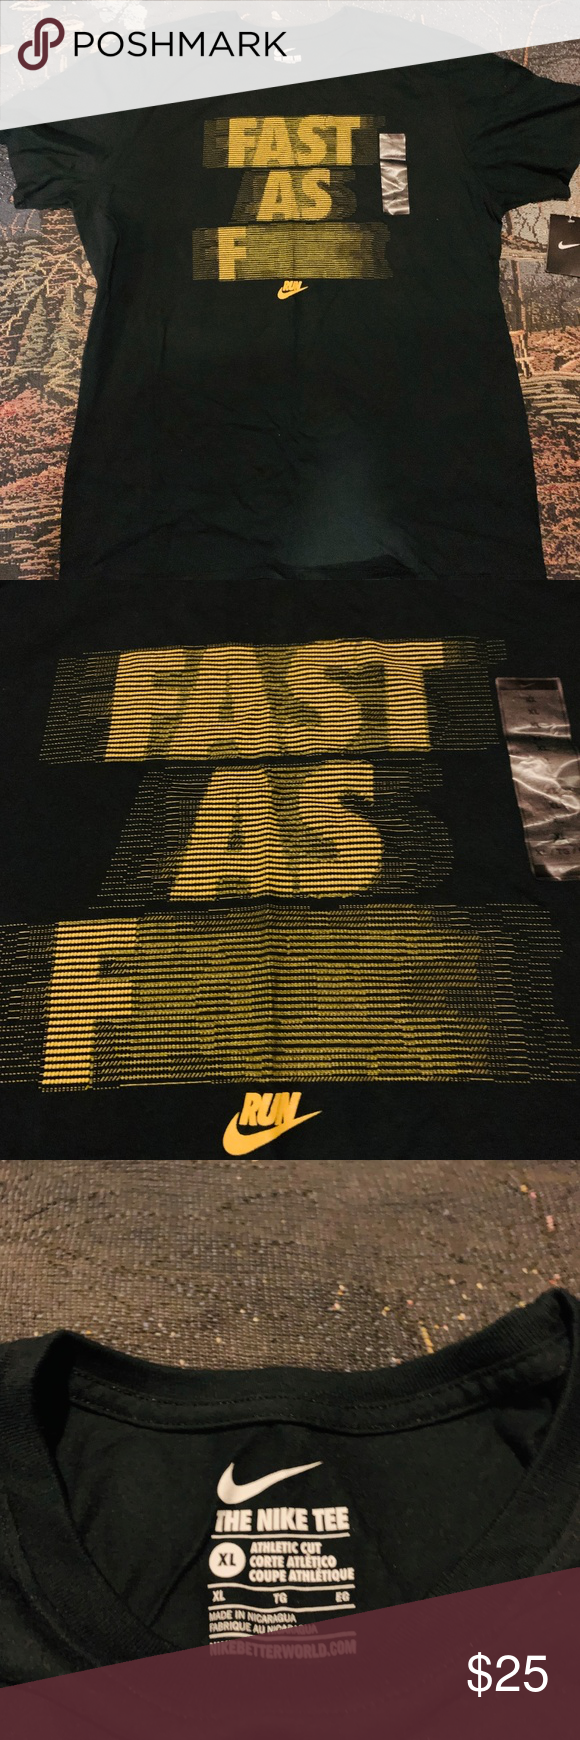 fast as f nike shirt